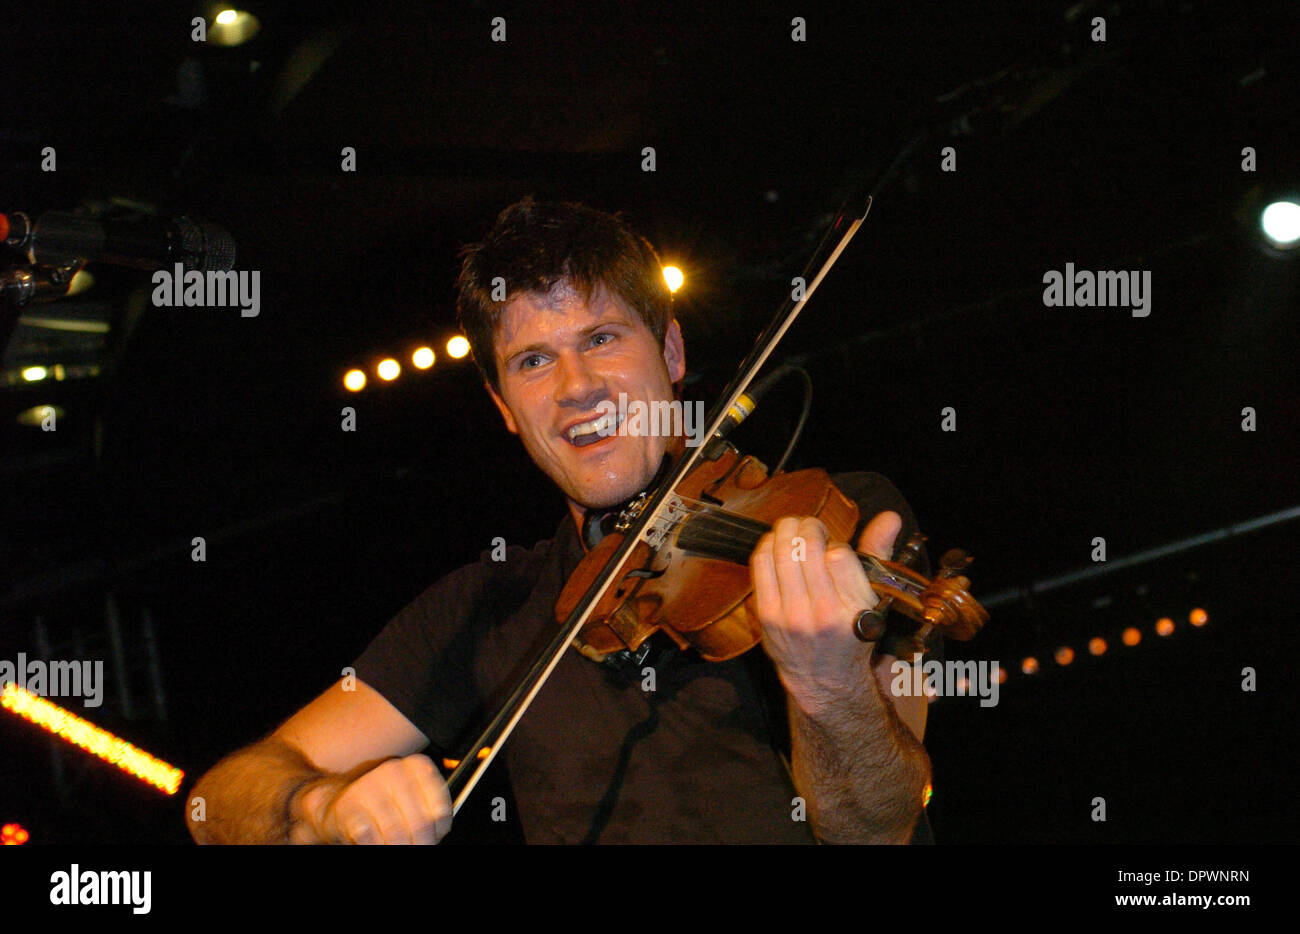 Jan 19, 2009 - Cannes, France - Musician SETH LAKEMAN performing live on stage at MIDEM 2009. The World's Music Community annual event MIDEM, the music industry's largest BtoB event, brings together 9,000 professionals from 90 countries to do business. (Credit Image: © Frederic Injimbert/ZUMA Press) - Stock Image